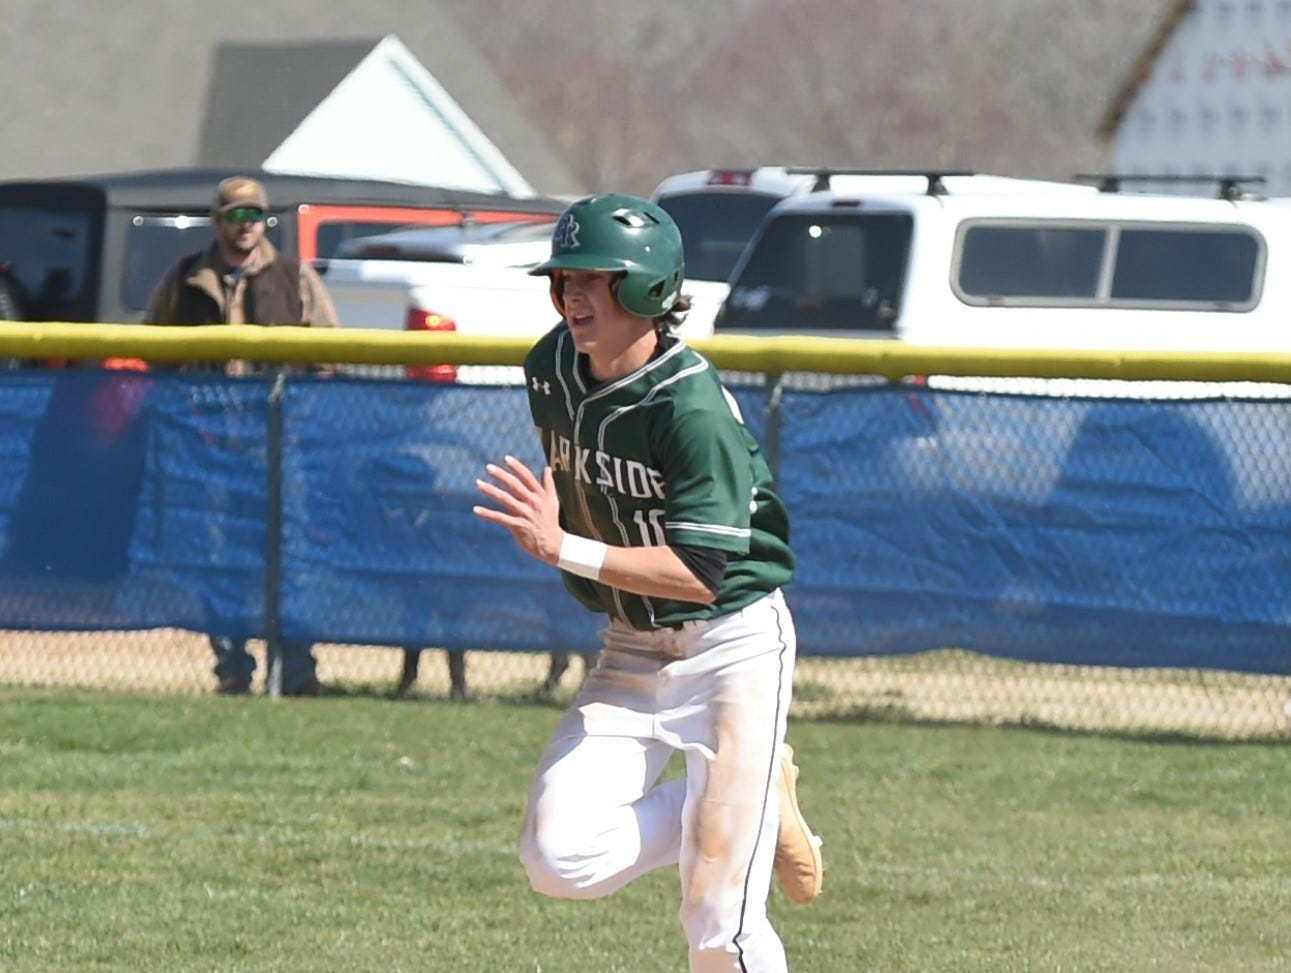 Parkside infielder Calvin Malone sprints to second base on Wednesday, April 3, 2019.